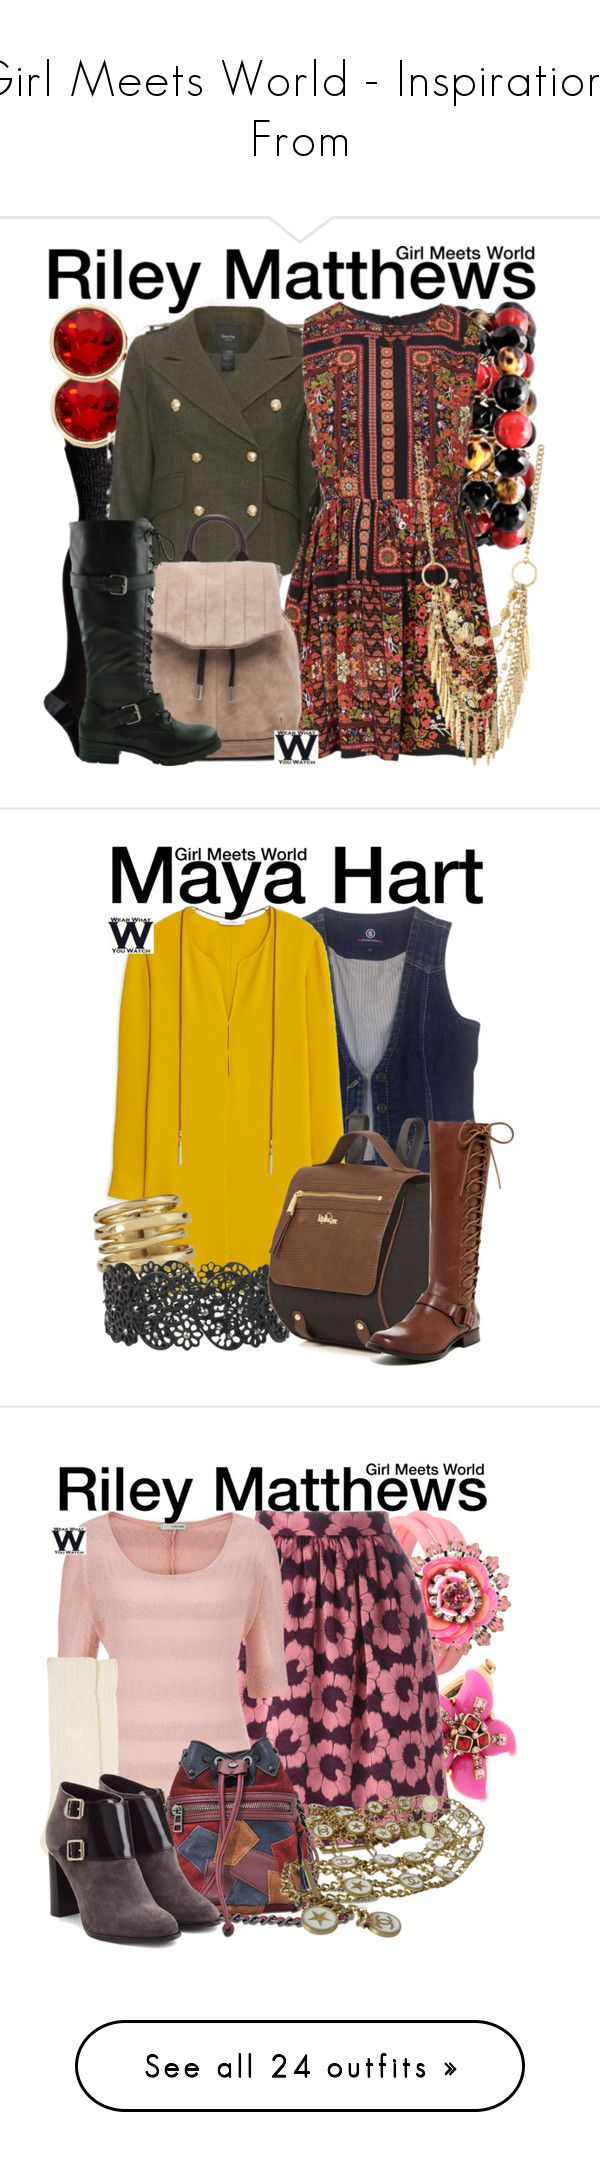 """""""Girl Meets World - Inspirations From"""" by wearwhatyouwatch ❤ liked on Polyvore featuring Smartwool, Liz Claiborne, Smythe, Topshop, rag & bone, Panacea, television, wearwhatyouwatch, Bogner and MANGO"""